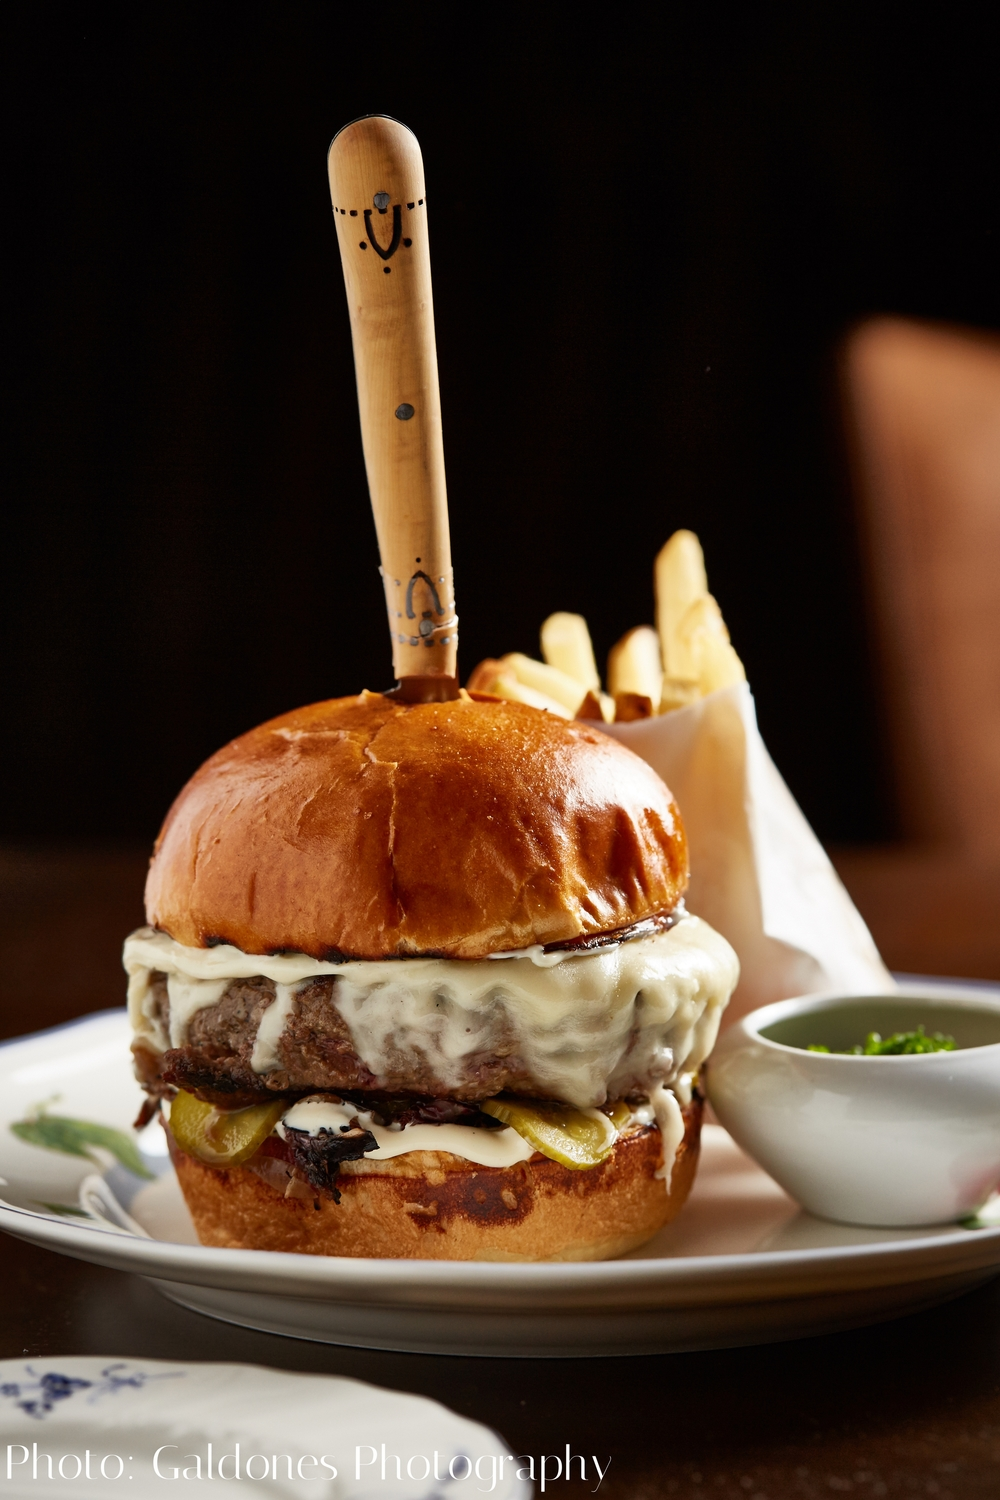 Beacon_Dinner_Burger_051216_HG_2.jpg